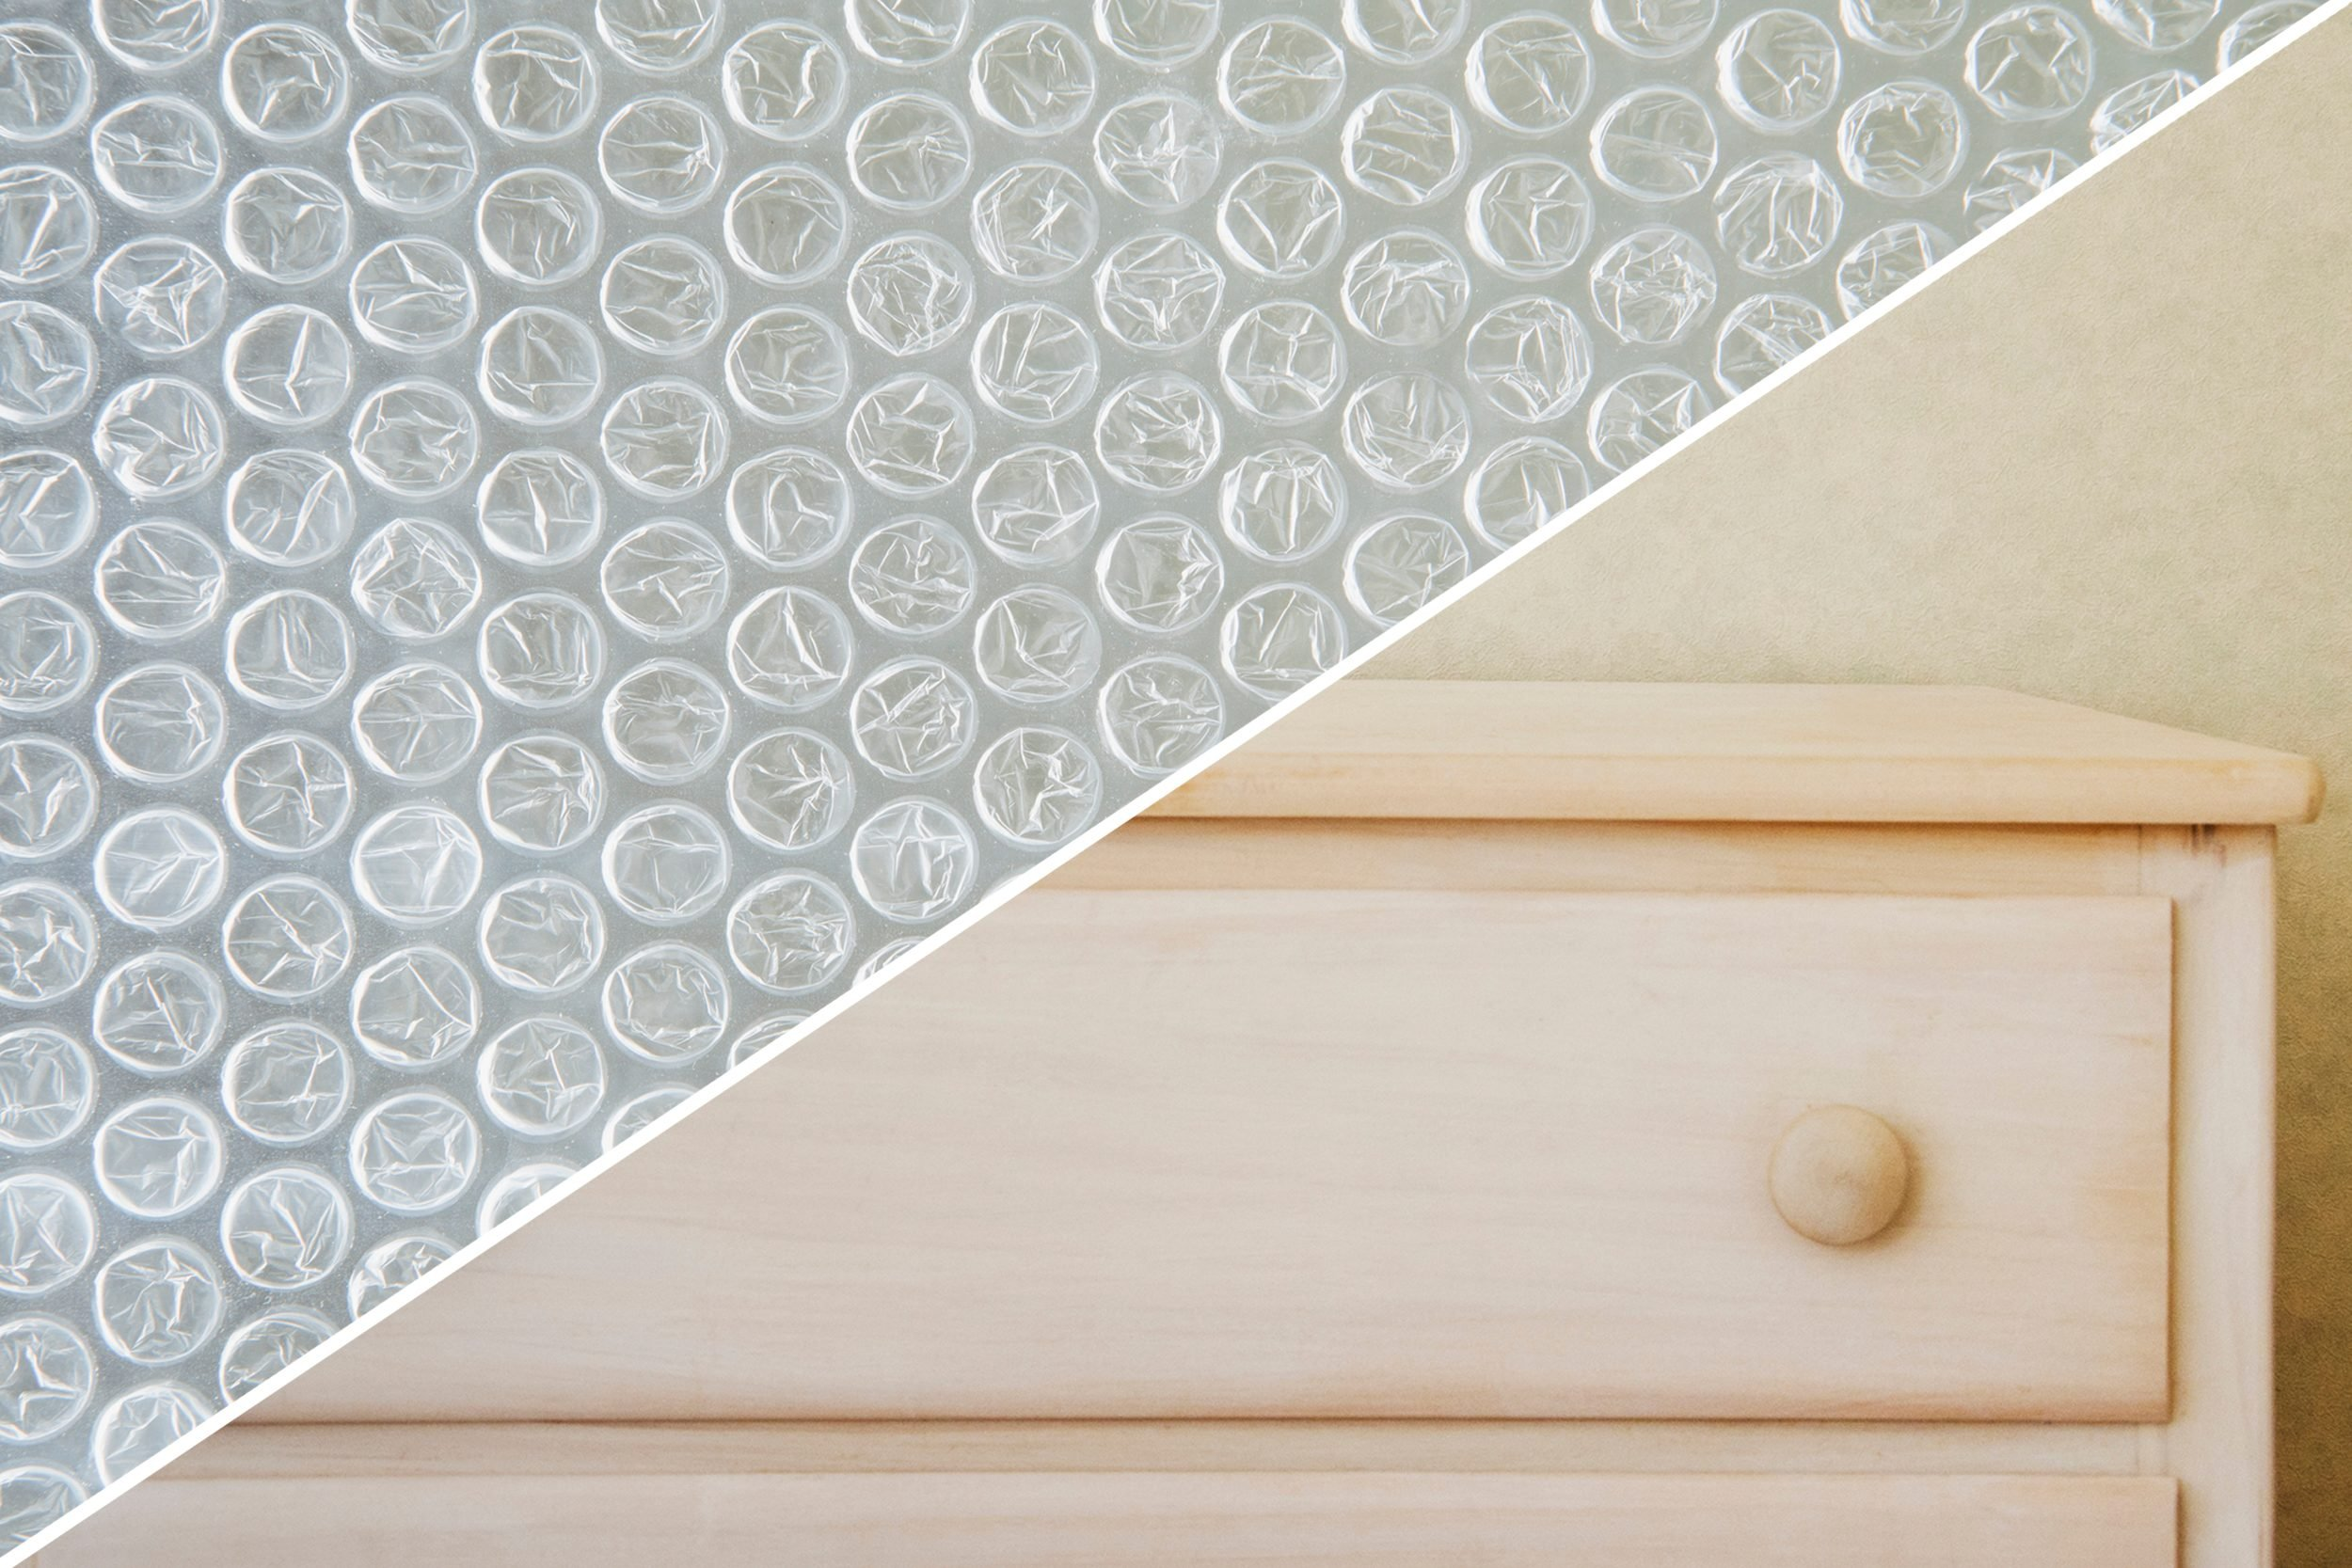 dusty furniture bubble wrap